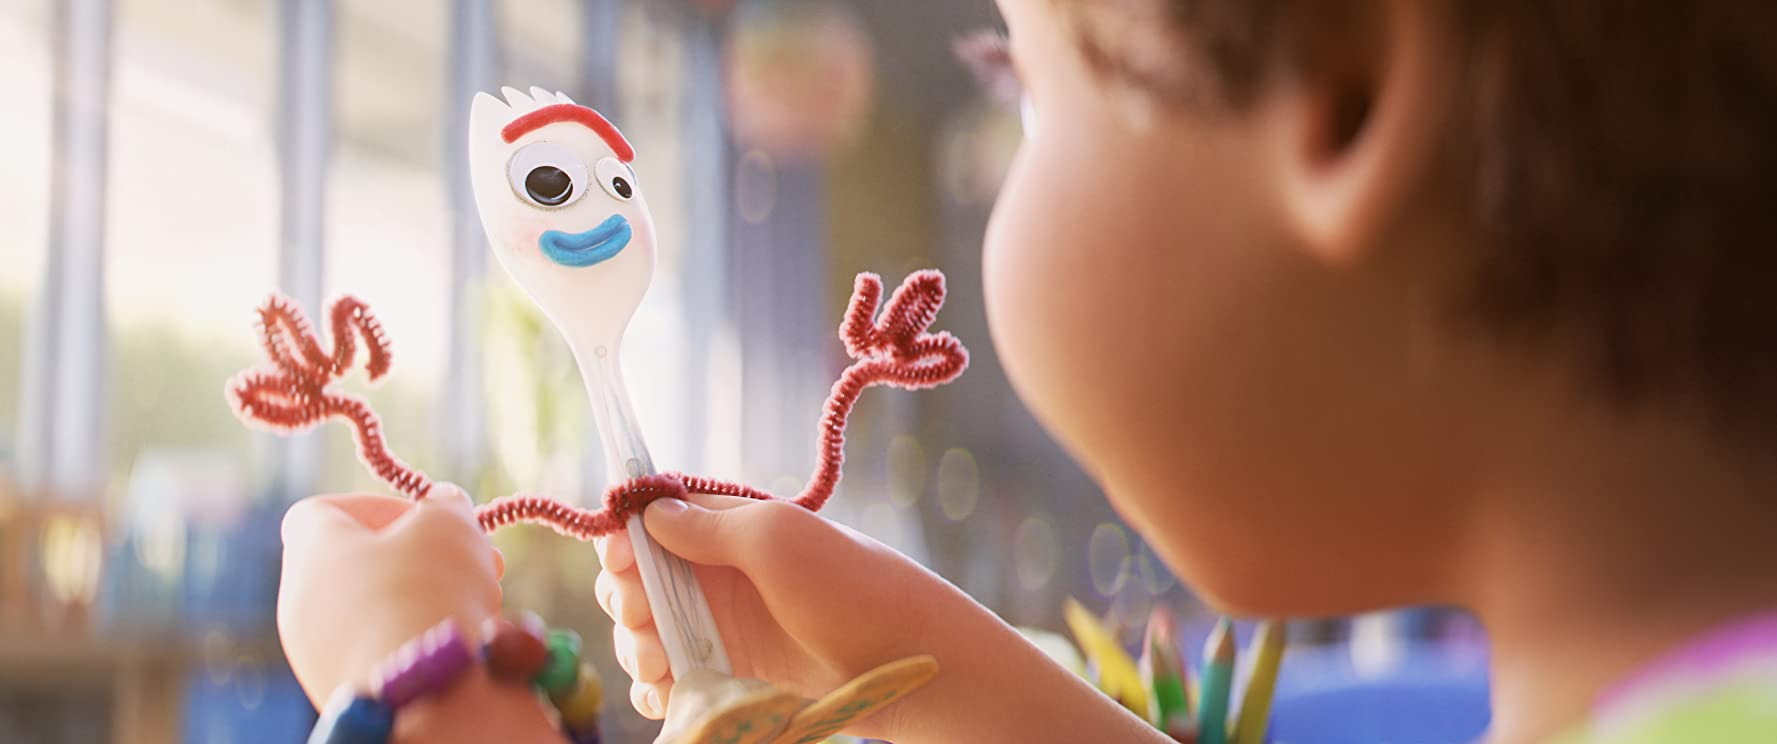 Tony Hale in Toy Story 4 (2019)